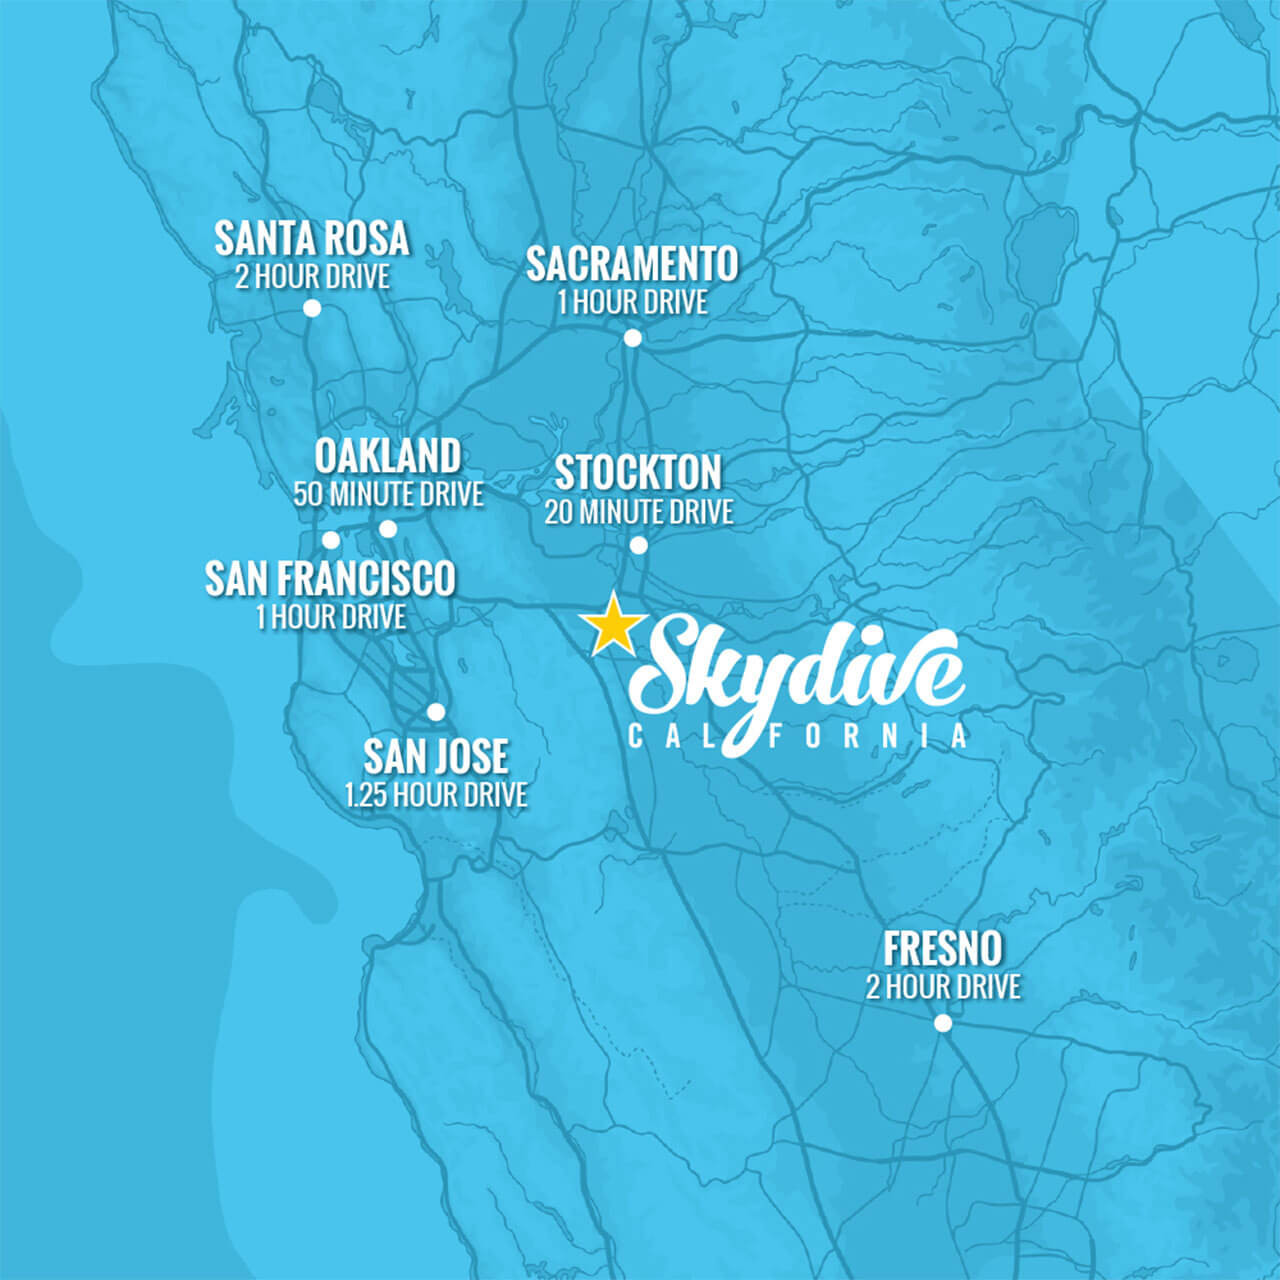 Skydive California map